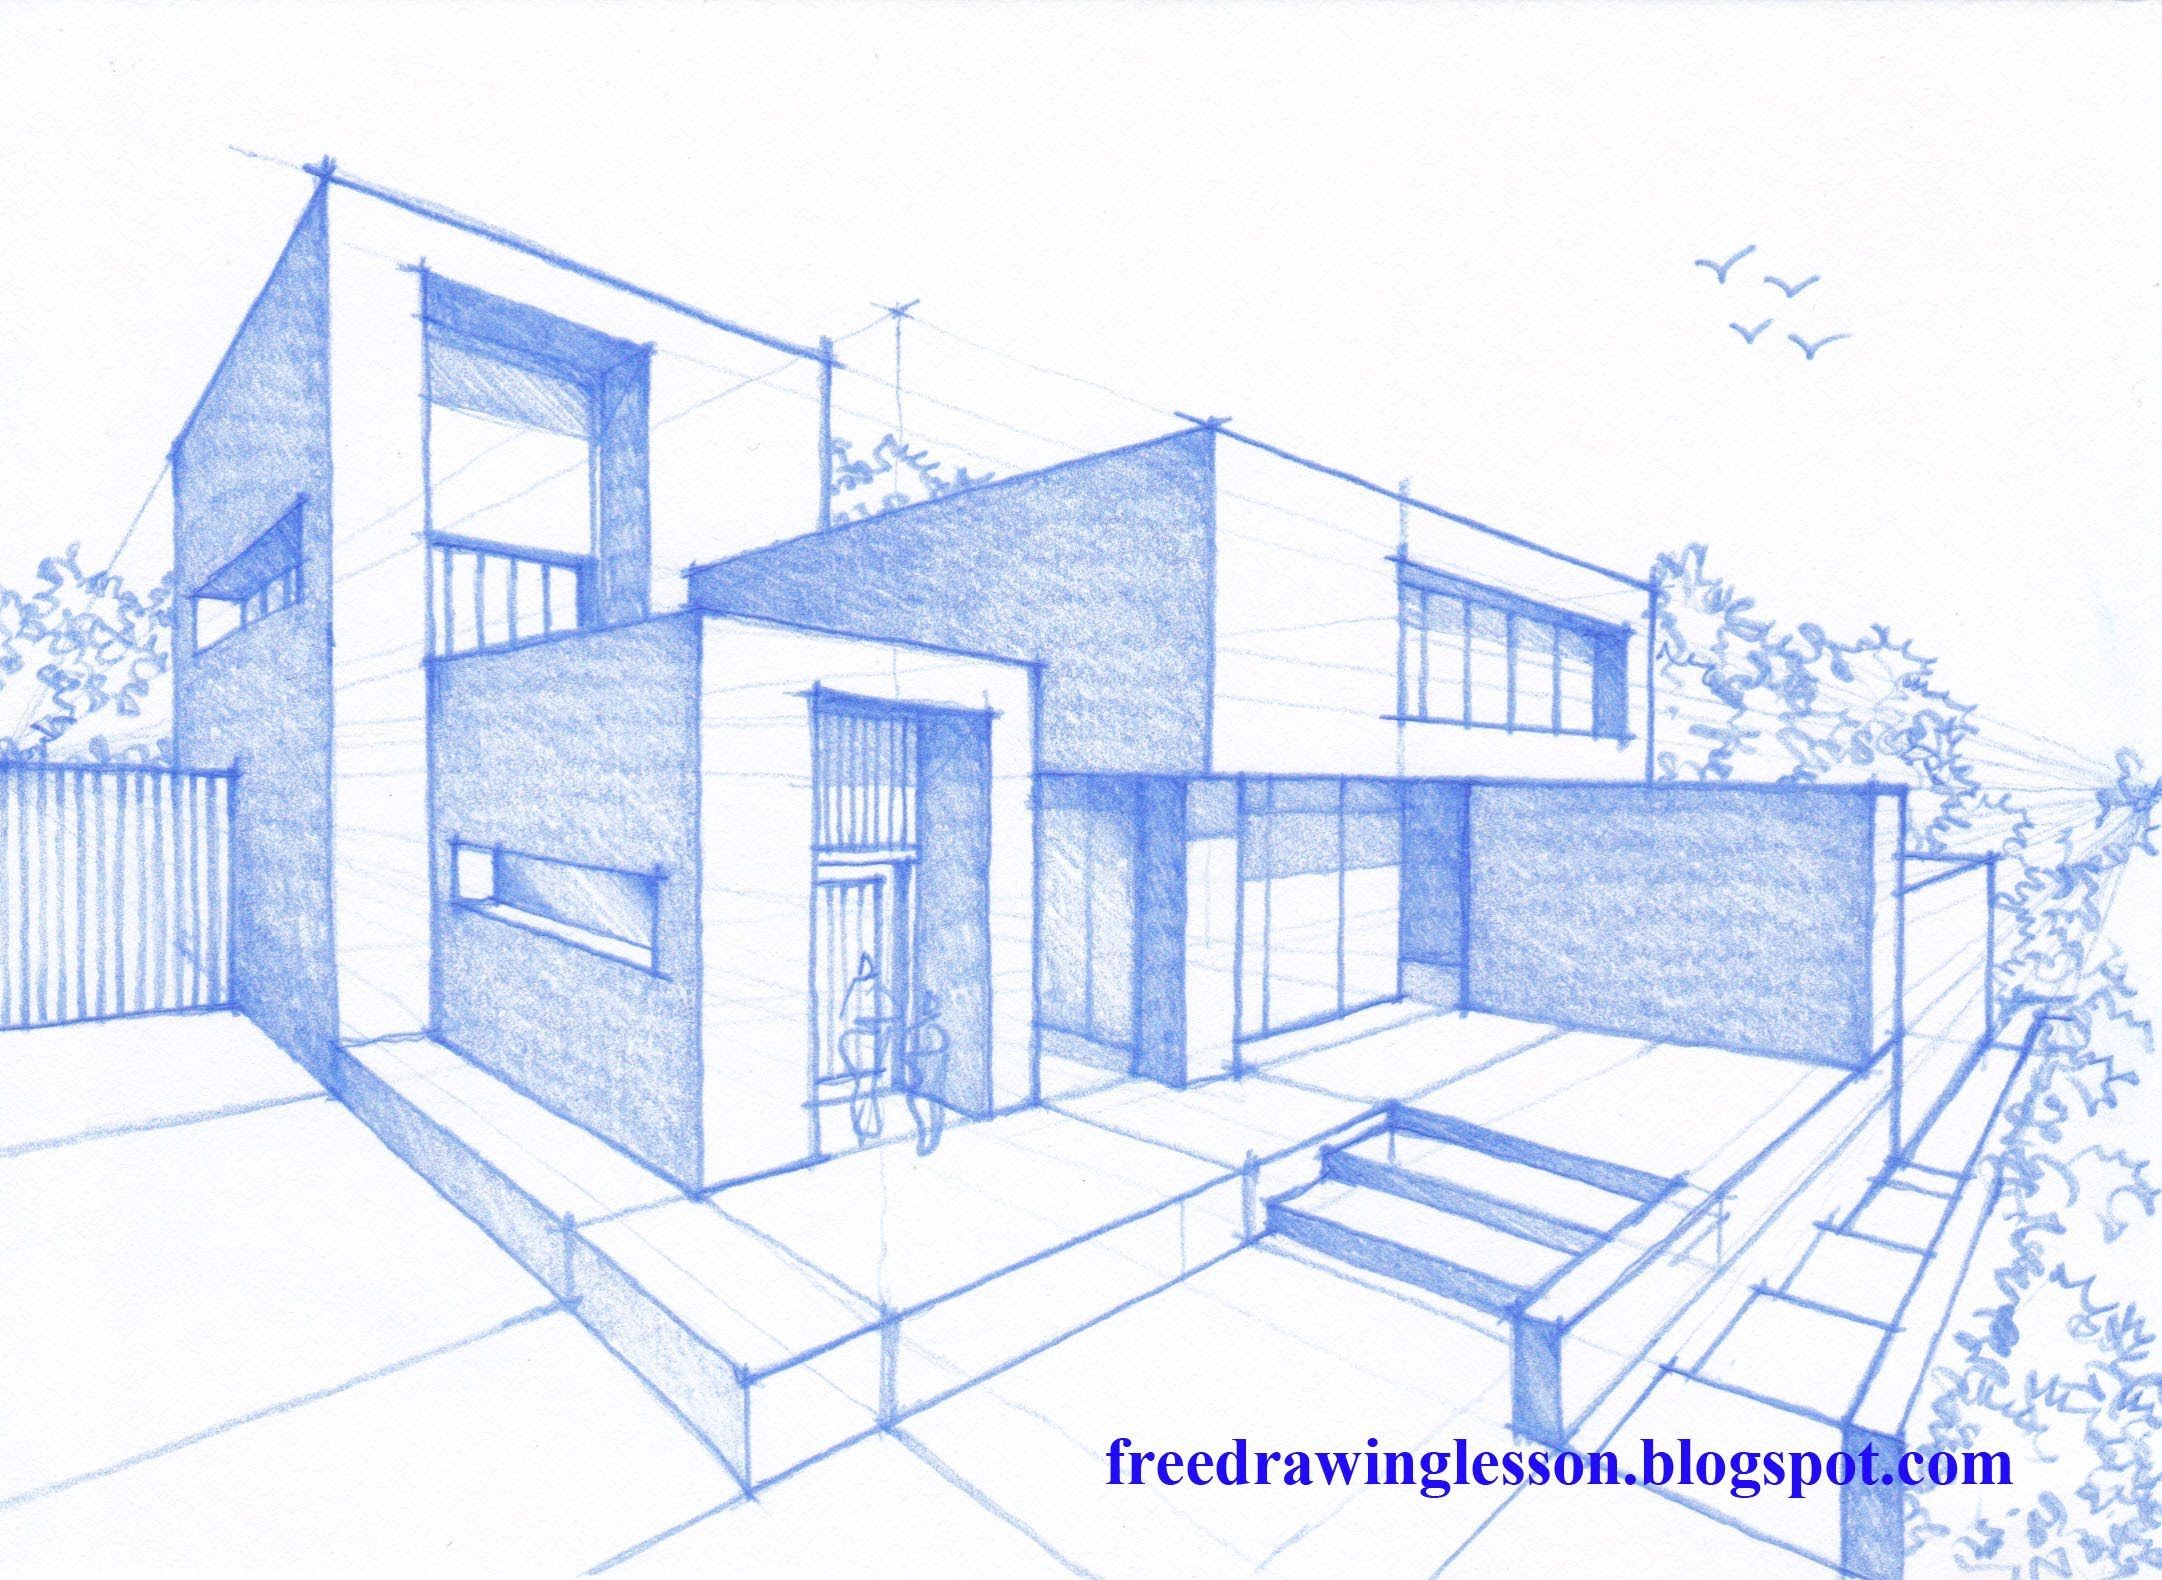 Let us try to draw this house design by following the step by step process in